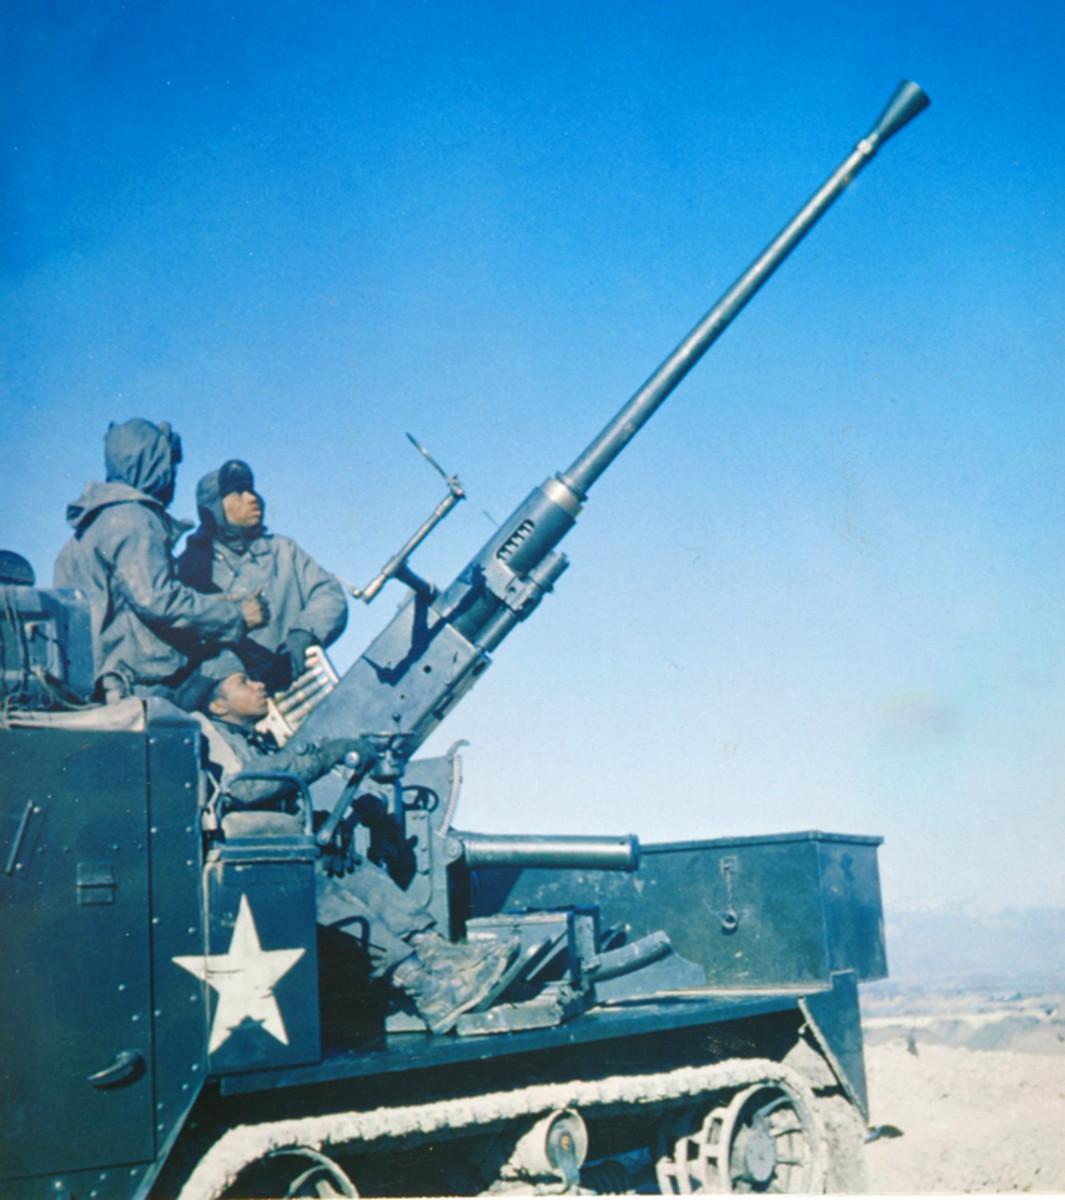 The M34 40mm gun motor carriage was created during the Korean War by rearming M15A1 multiple gun motor carriages with a 40mm Bofors cannon instead of the previously used 37mm cannon and twin .50 caliber machine guns.